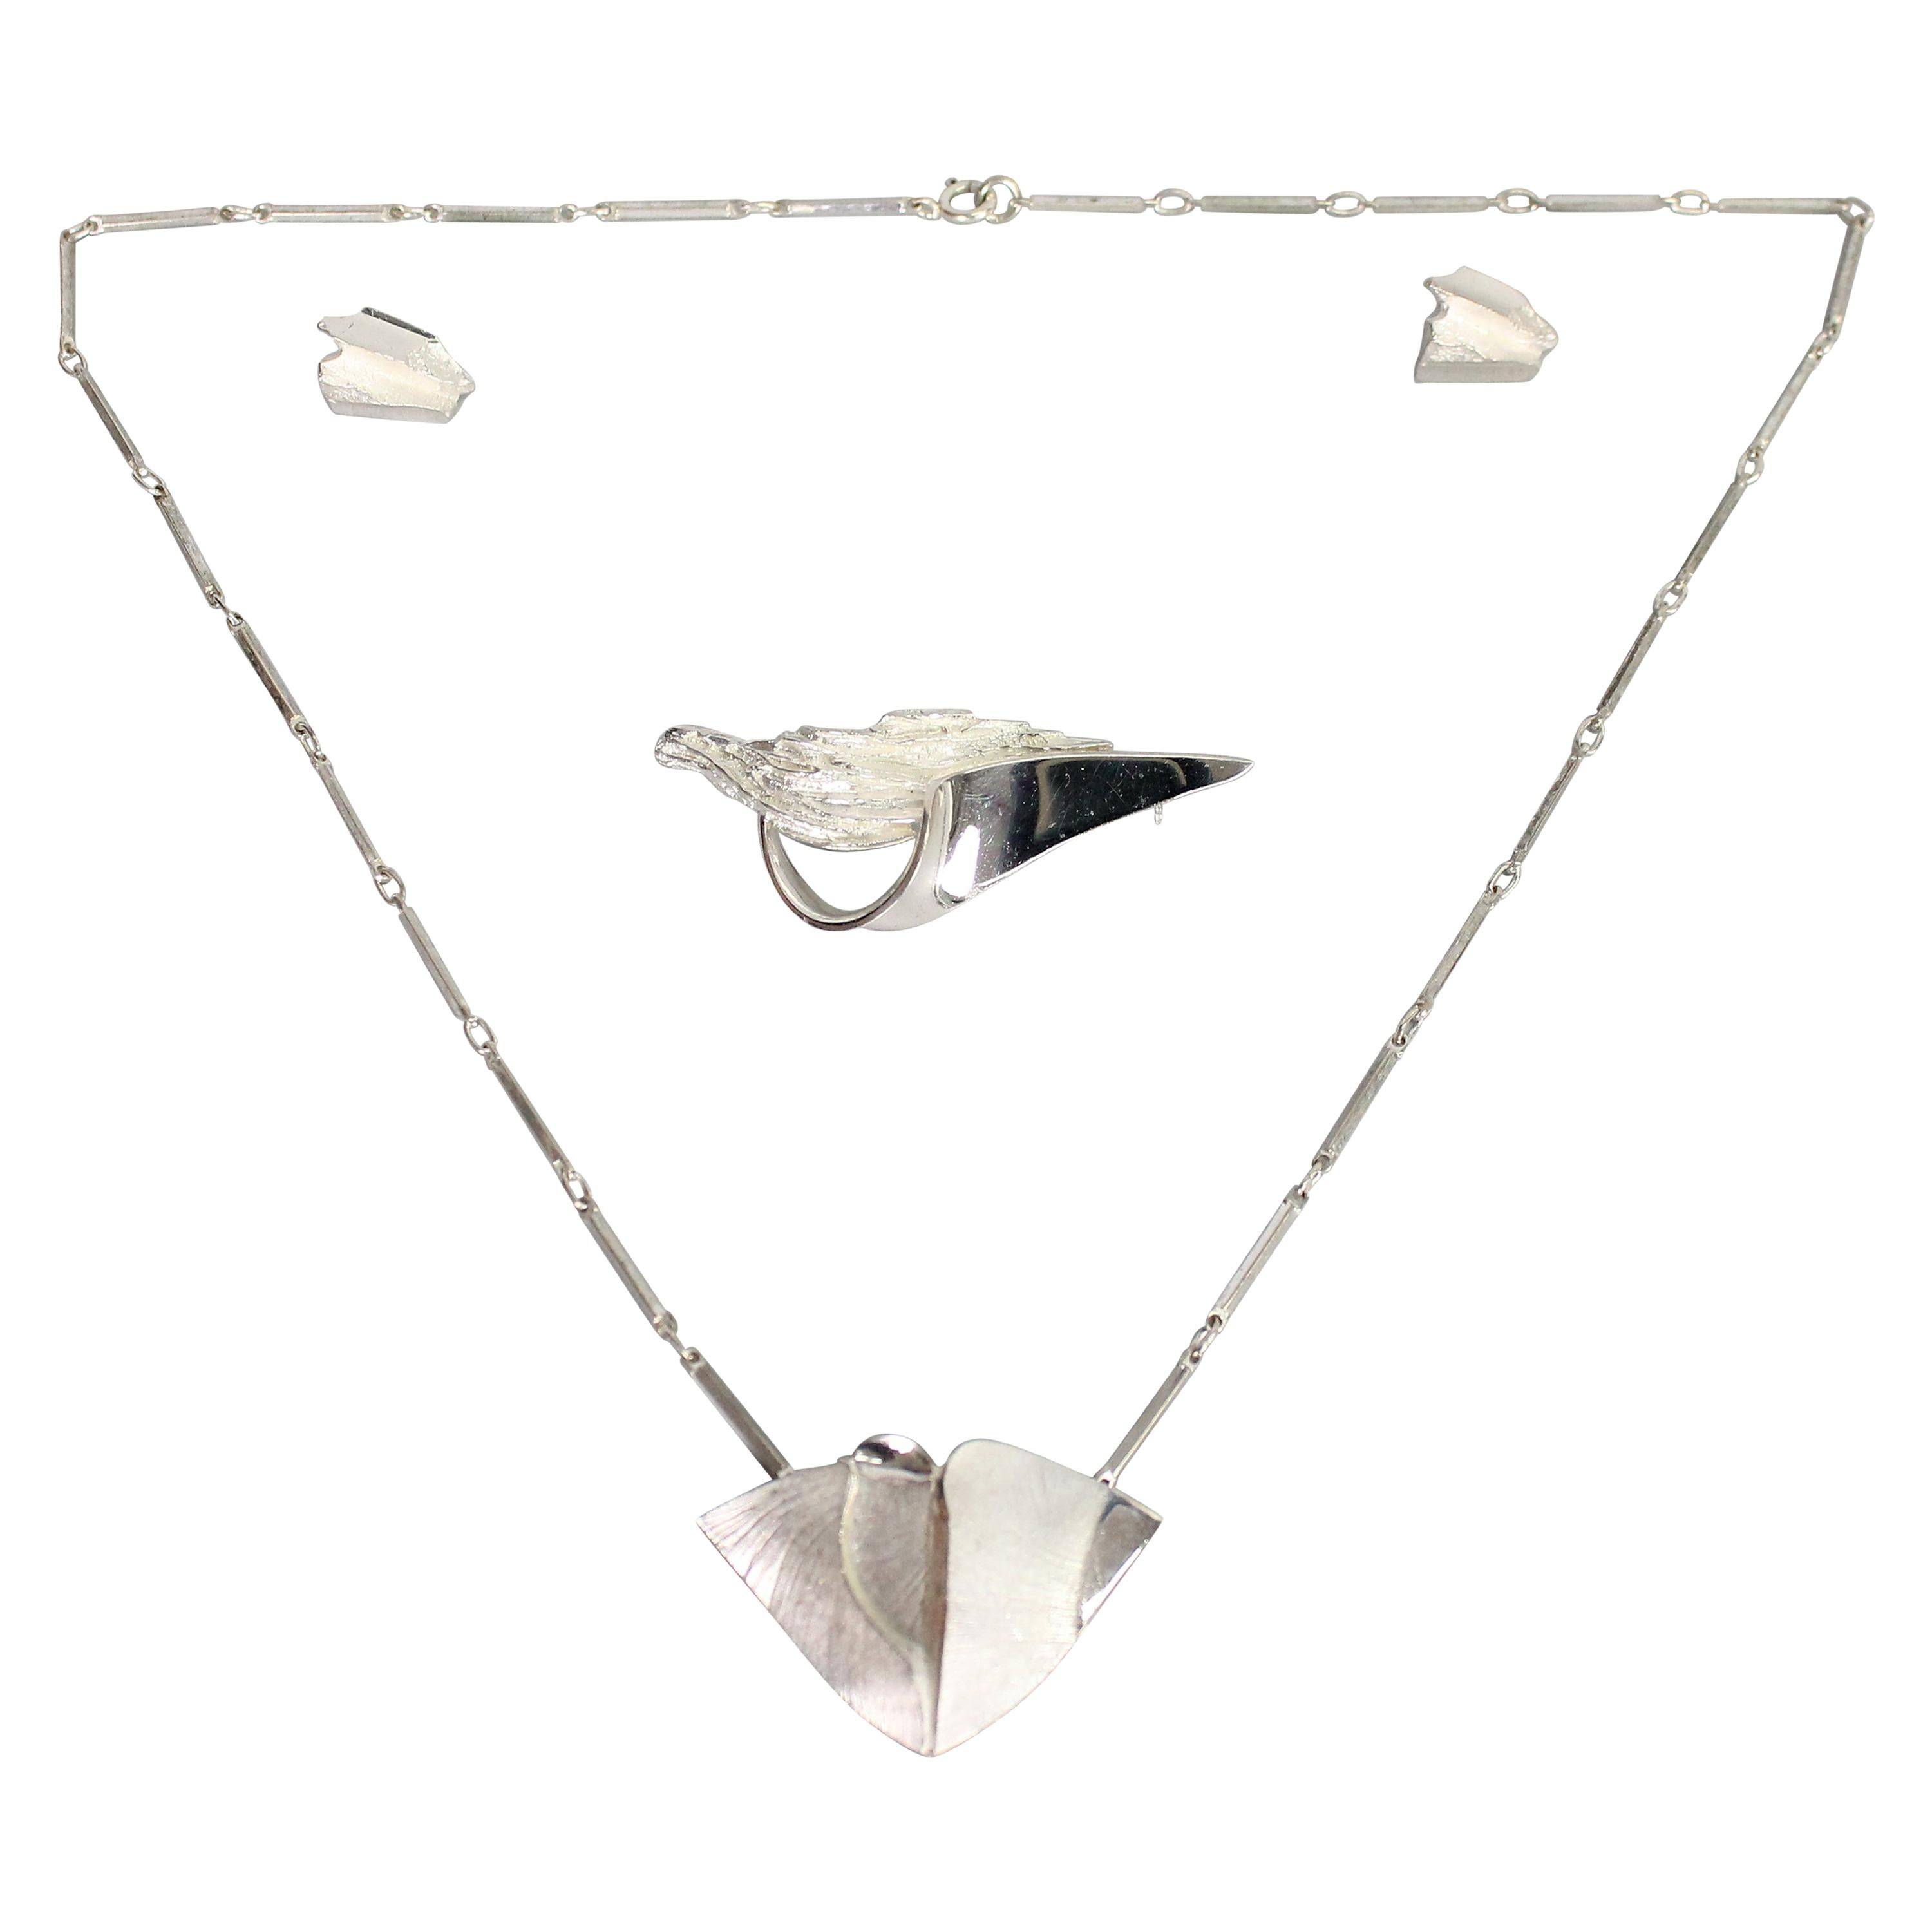 Matti J Hyvarinen a Set of Necklace, Earrings and a Brooch, Sterling, Finland